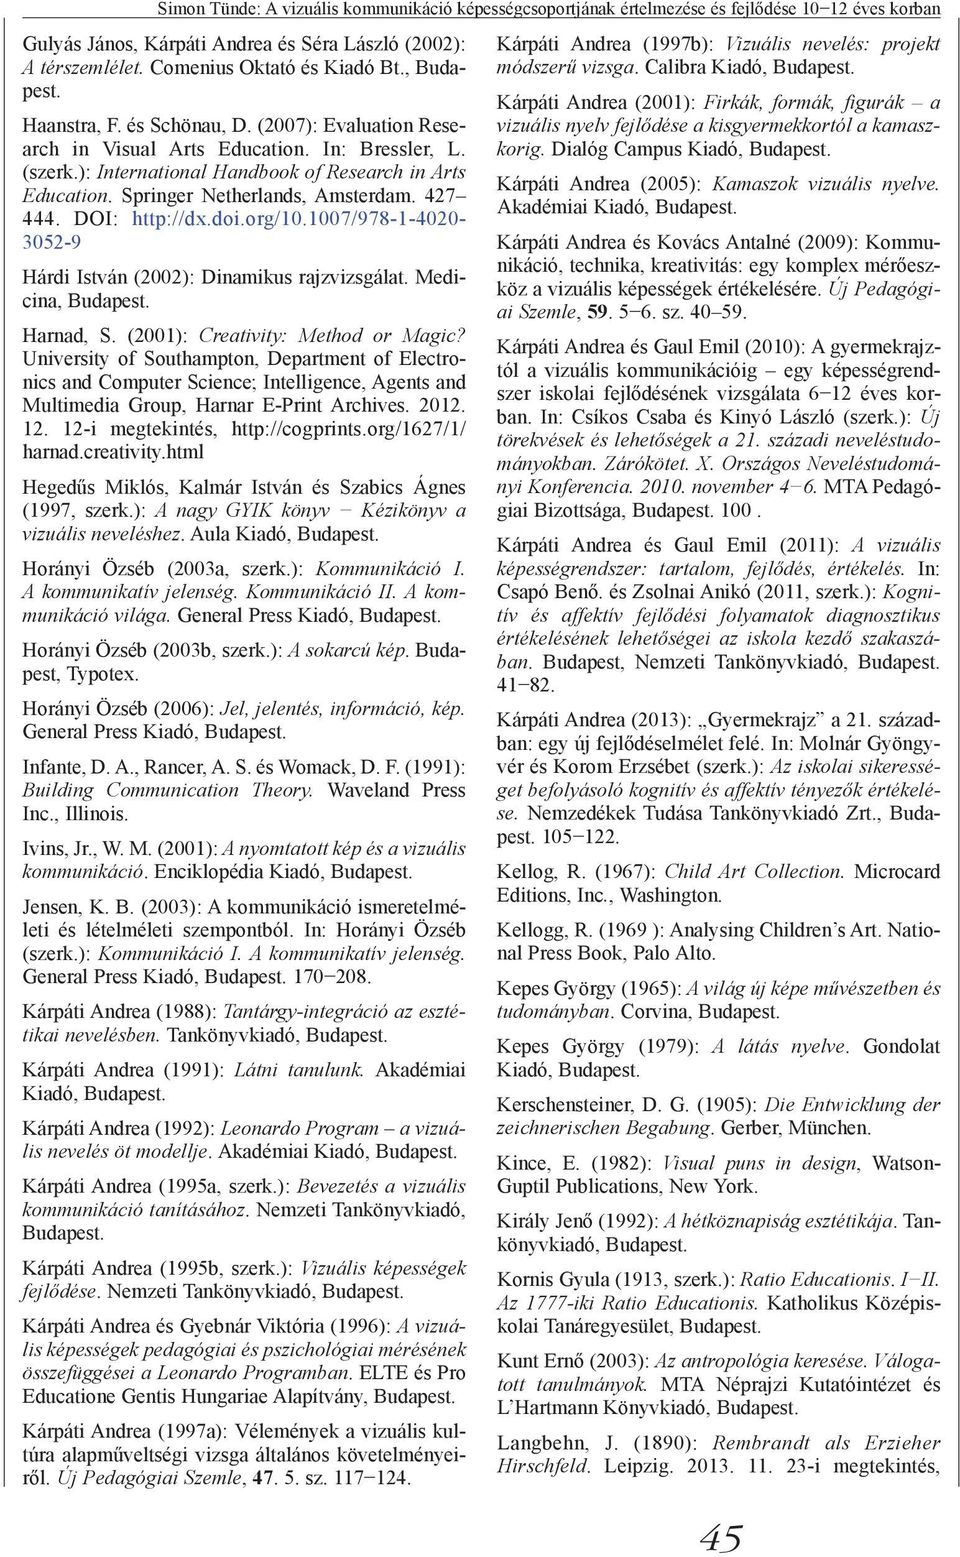 427 444. DOI: http://dx.doi.org/10.1007/978-1-4020-3052-9 Hárdi István (2002): Dinamikus rajzvizsgálat. Medicina, Harnad, S. (2001): Creativity: Method or Magic?